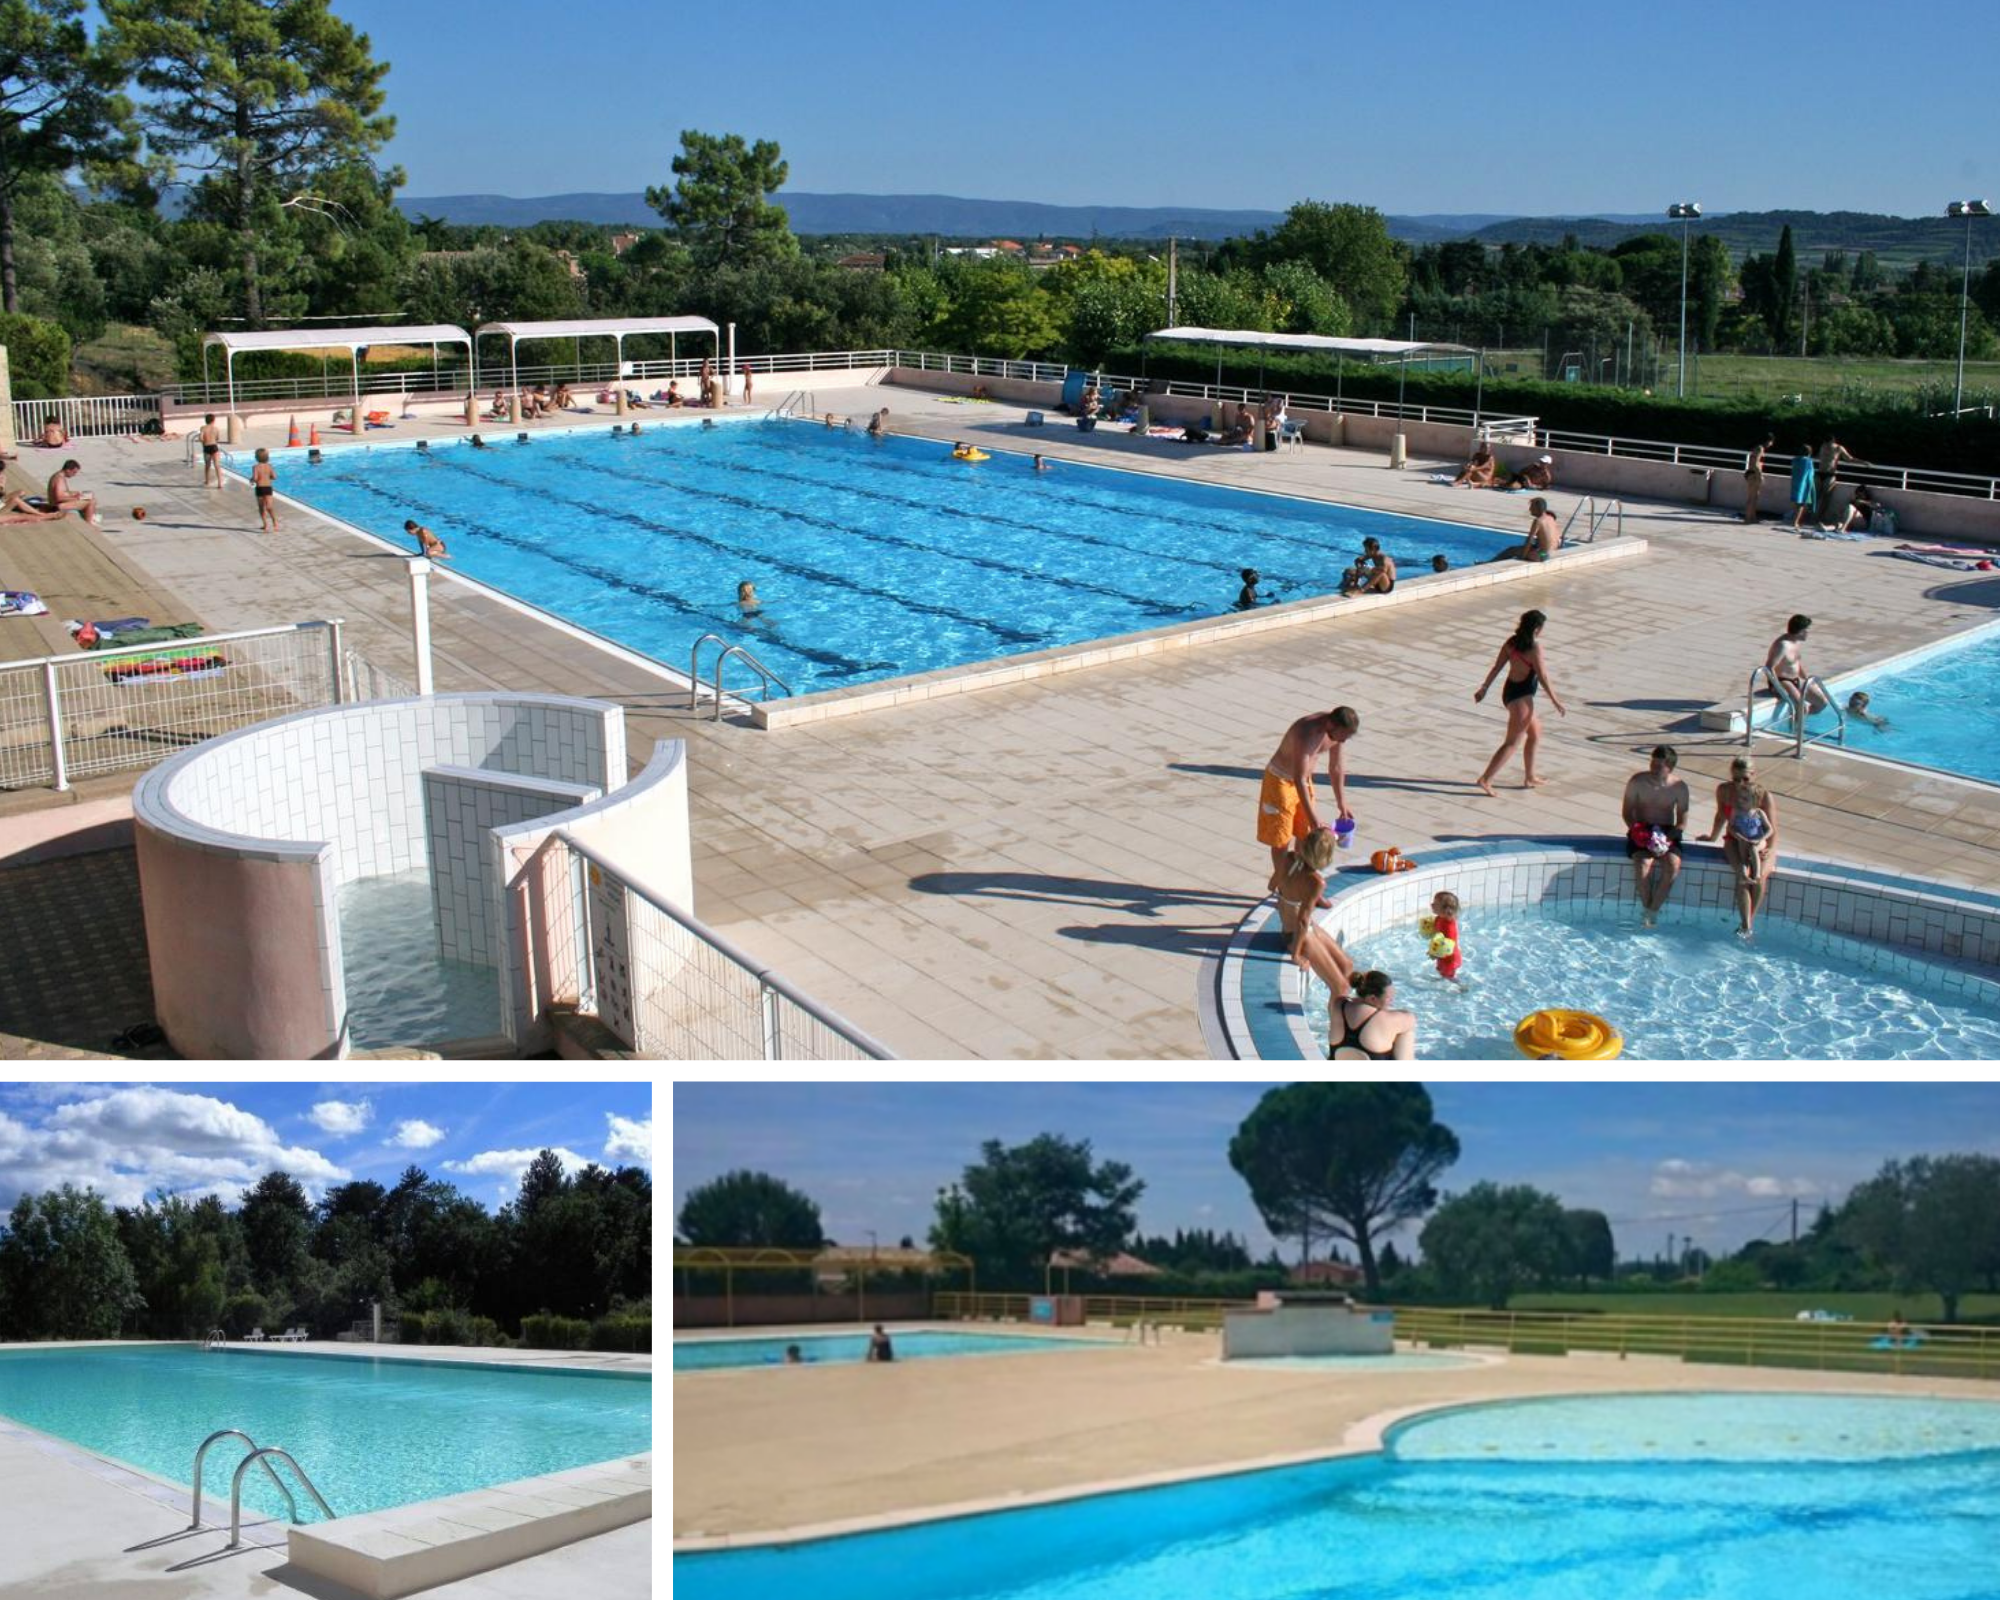 Swimming pool areas near Mont Ventoux, Bédoin, Carpentras, Ville sur Auzon, Beaumes de Venise...